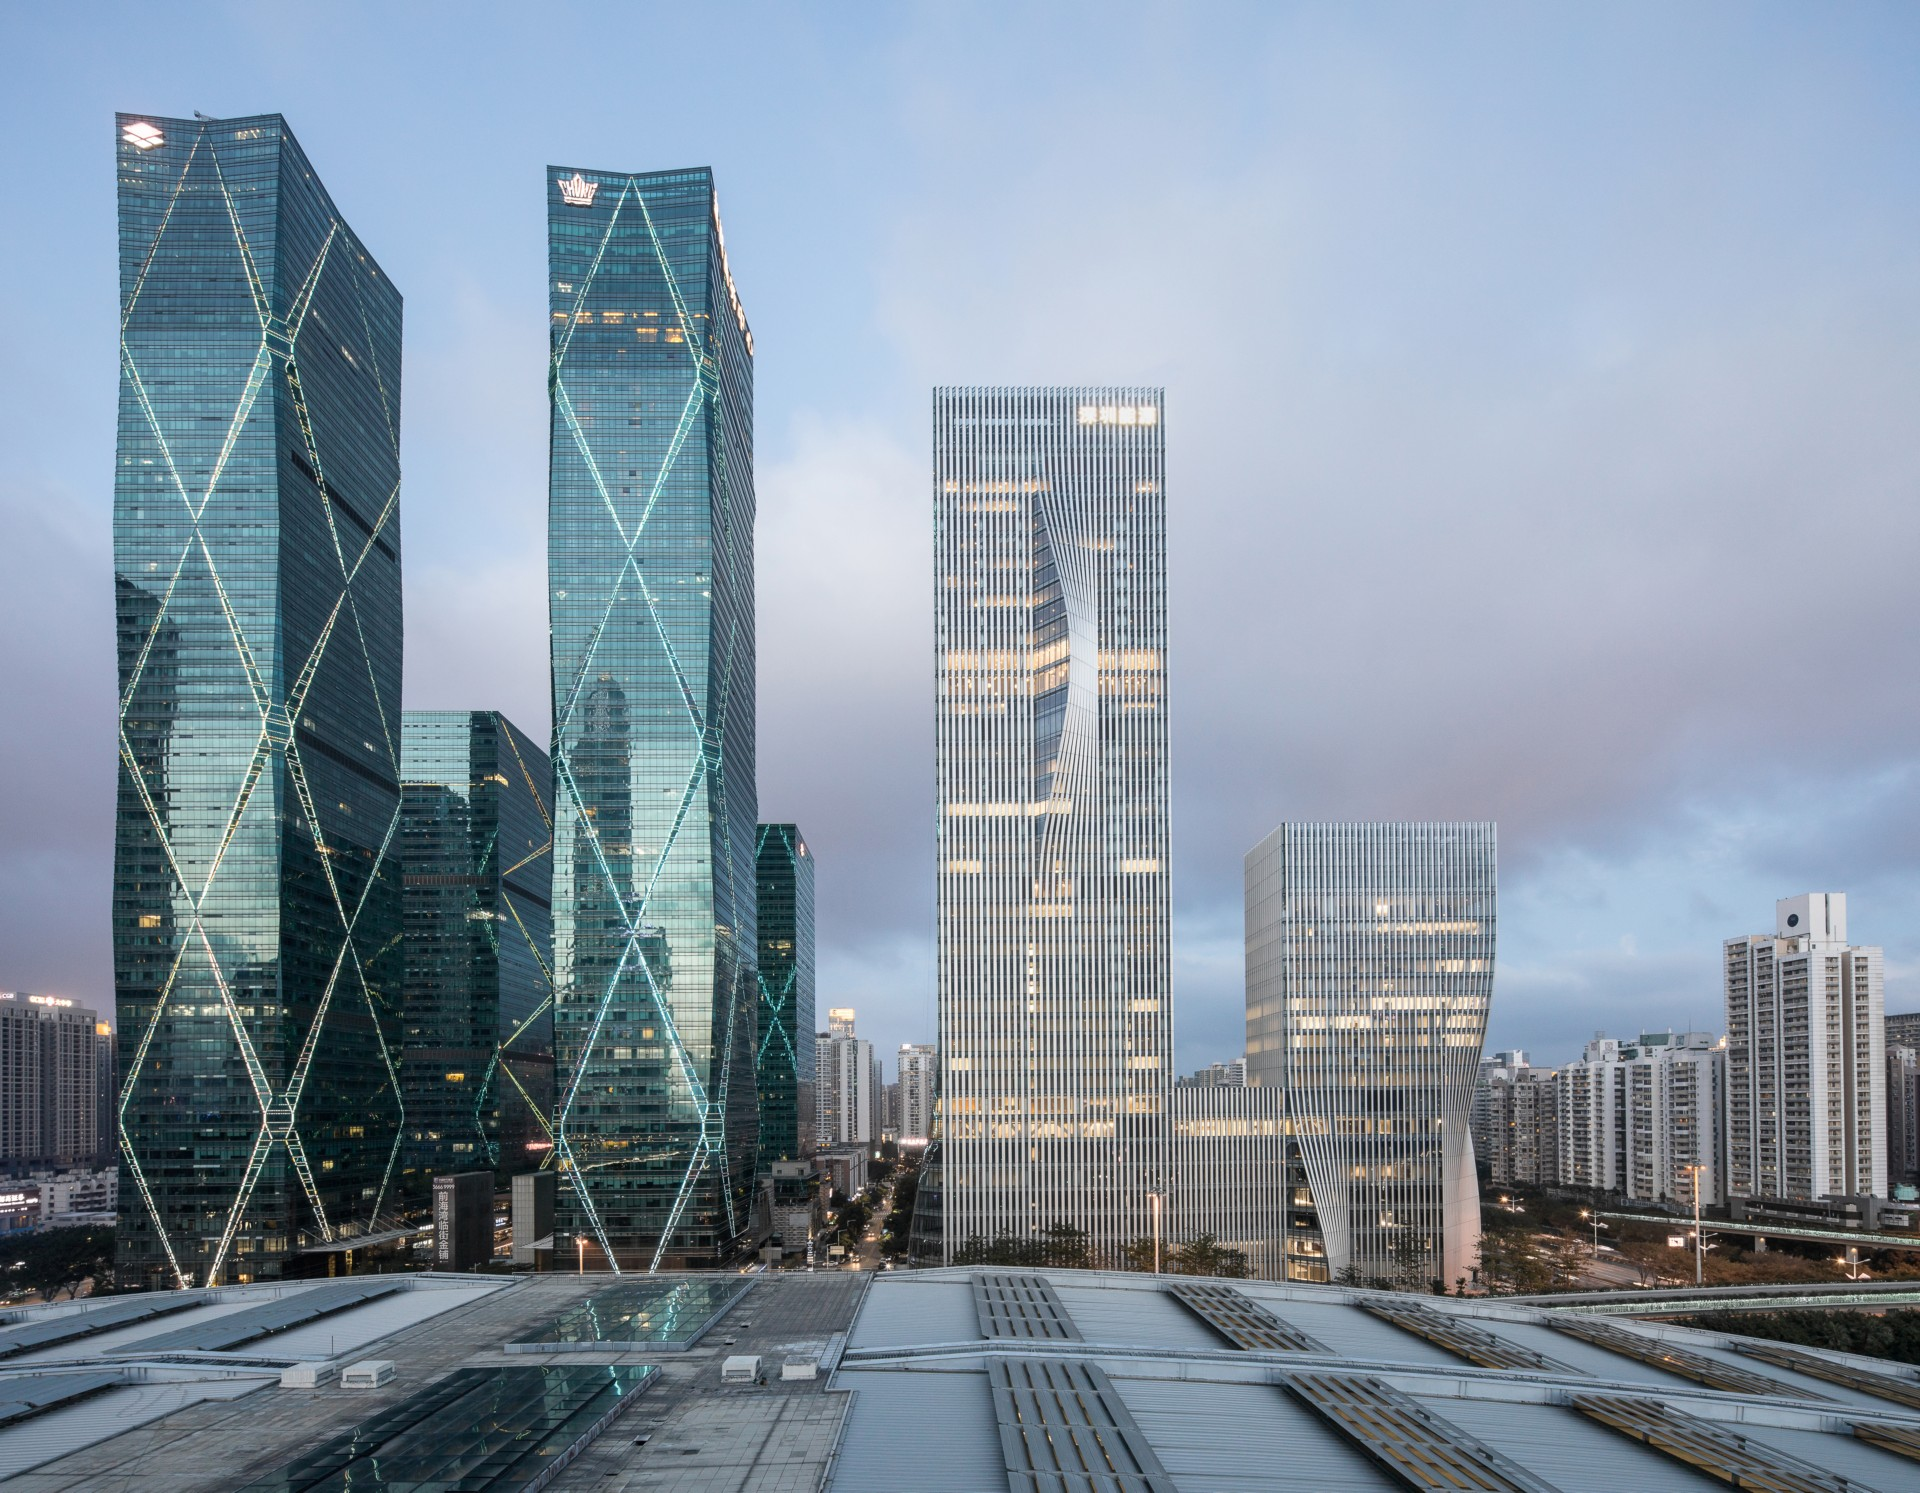 BIG completes the new Shenzhen Energy Mansion skyscraper